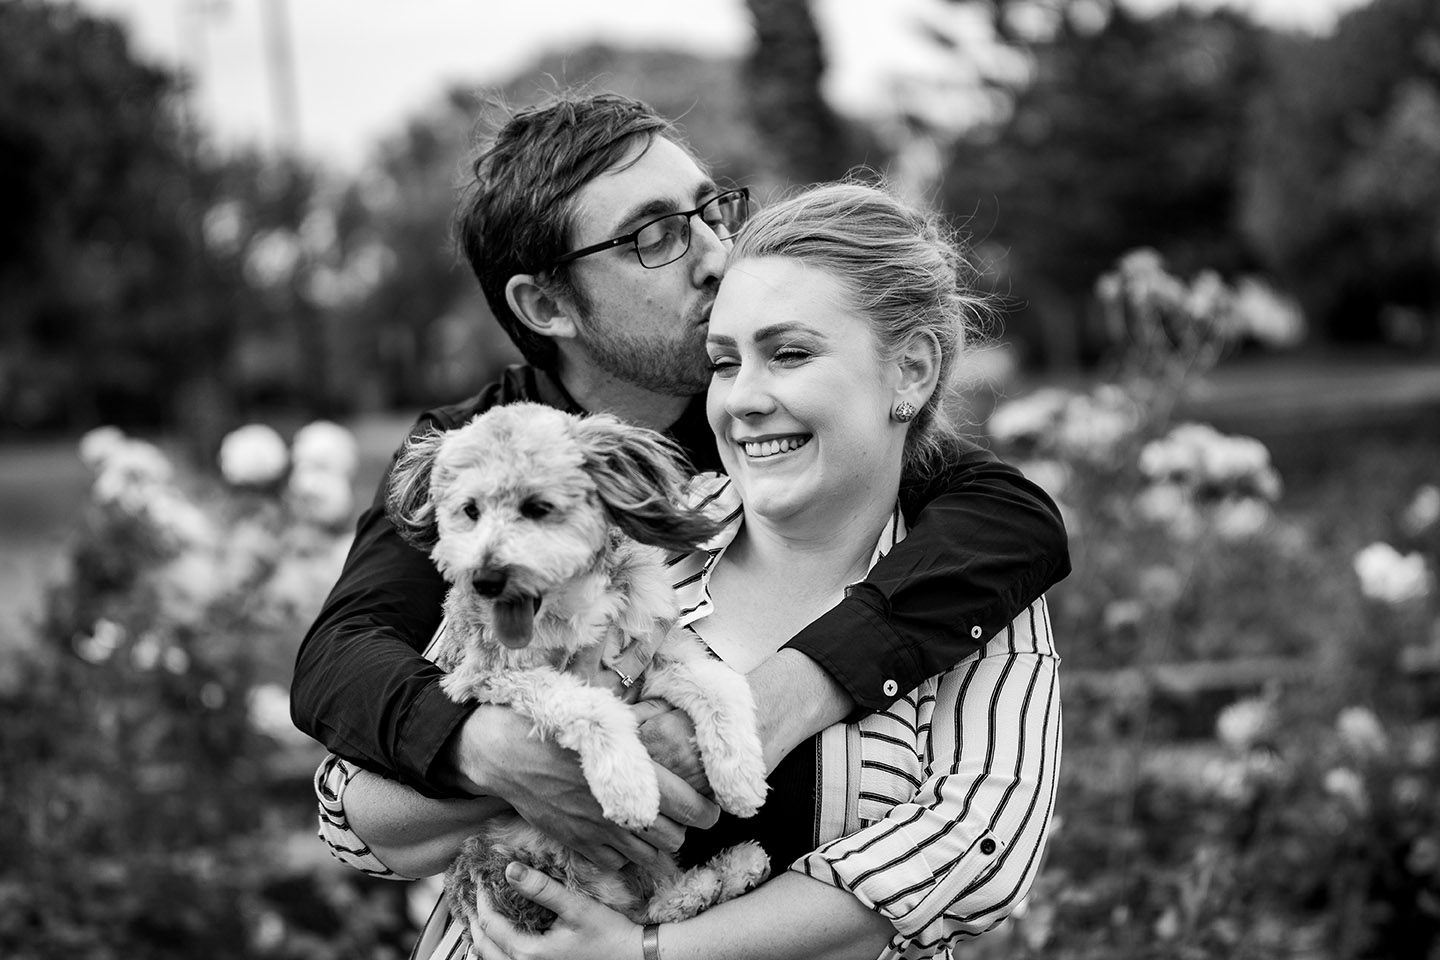 Engagement Photography - couple in park with dog black and white